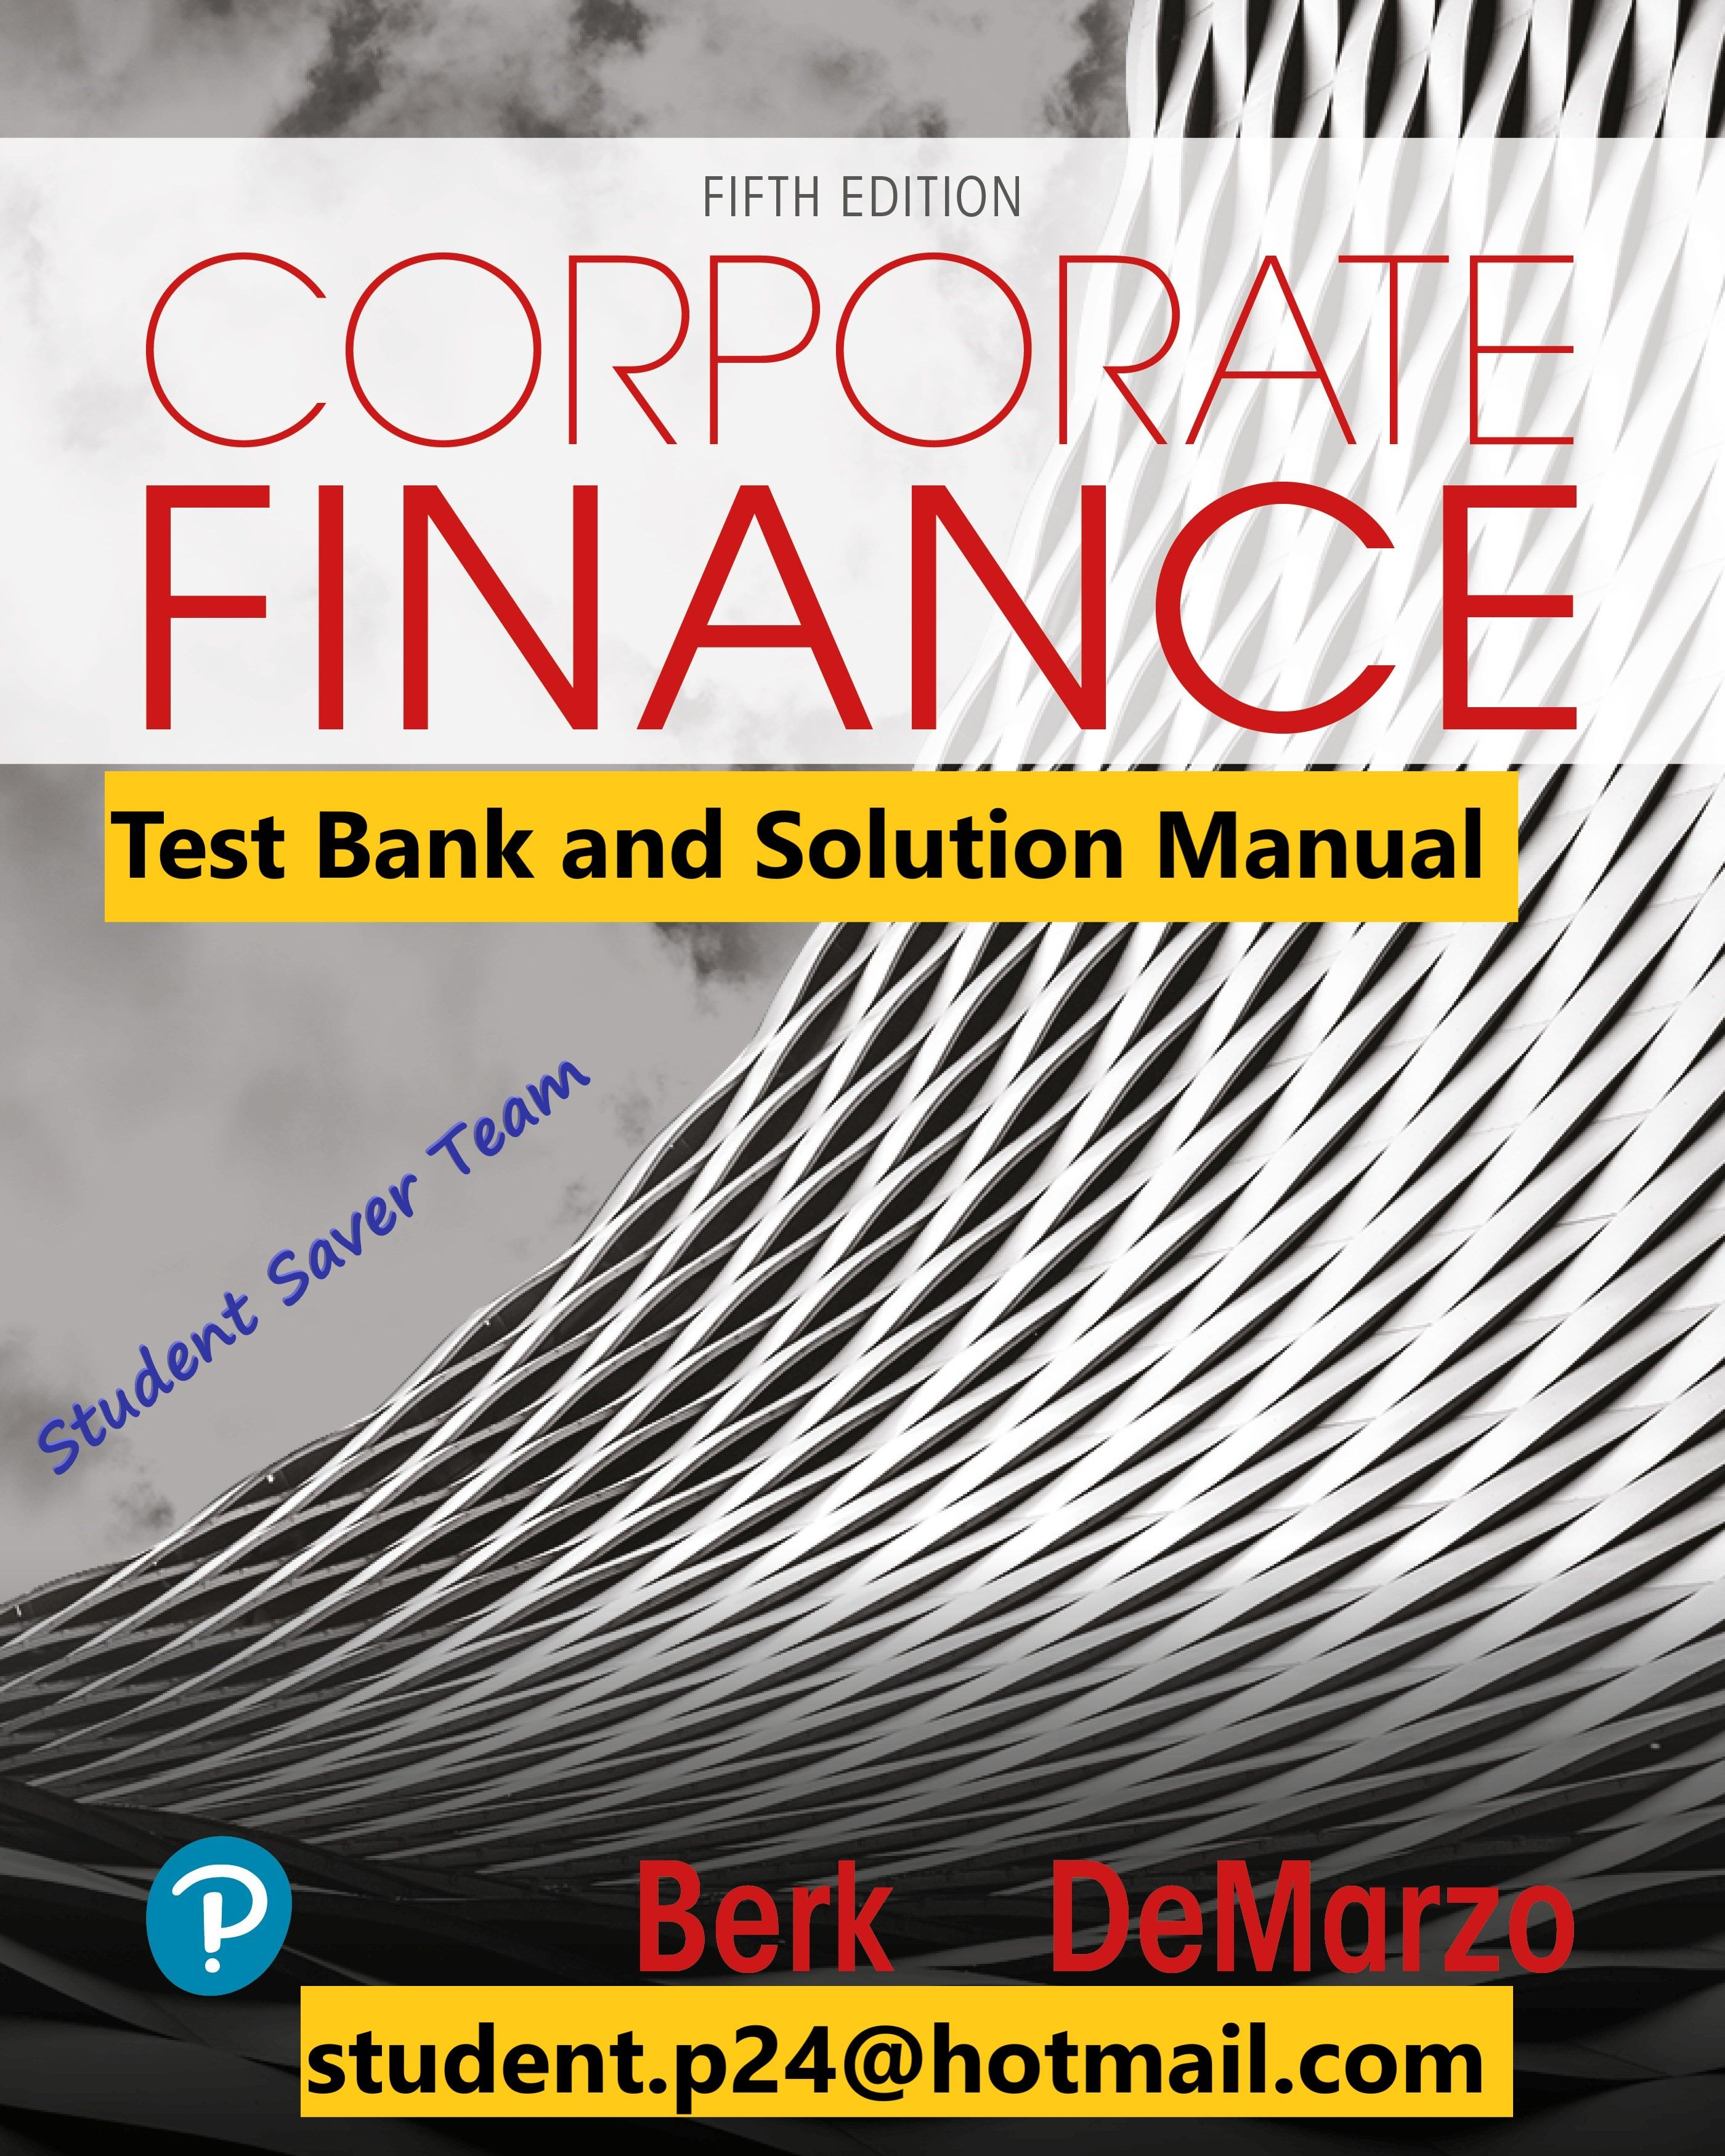 Pin On Test Banks And Solutions Manual 2019 2020